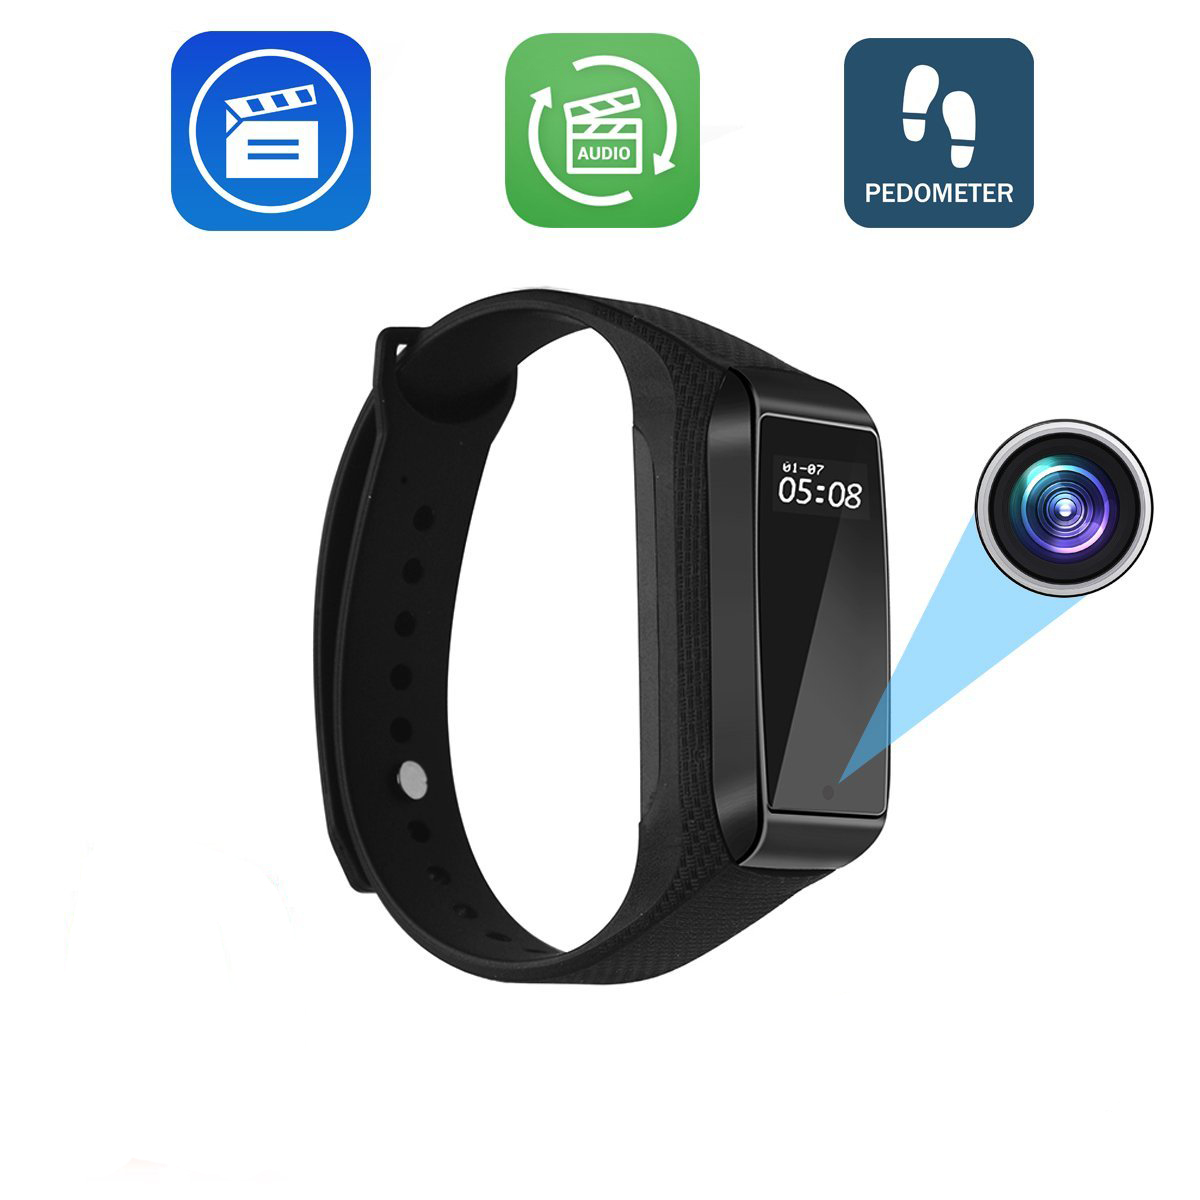 K68 Mini Smart Bracelet Camera HD 1080P Wearable Band DVR Video Audio Recorder Secret Camcorder Micro Cam Fitness Tracker WebcamK68 Mini Smart Bracelet Camera HD 1080P Wearable Band DVR Video Audio Recorder Secret Camcorder Micro Cam Fitness Tracker Webcam